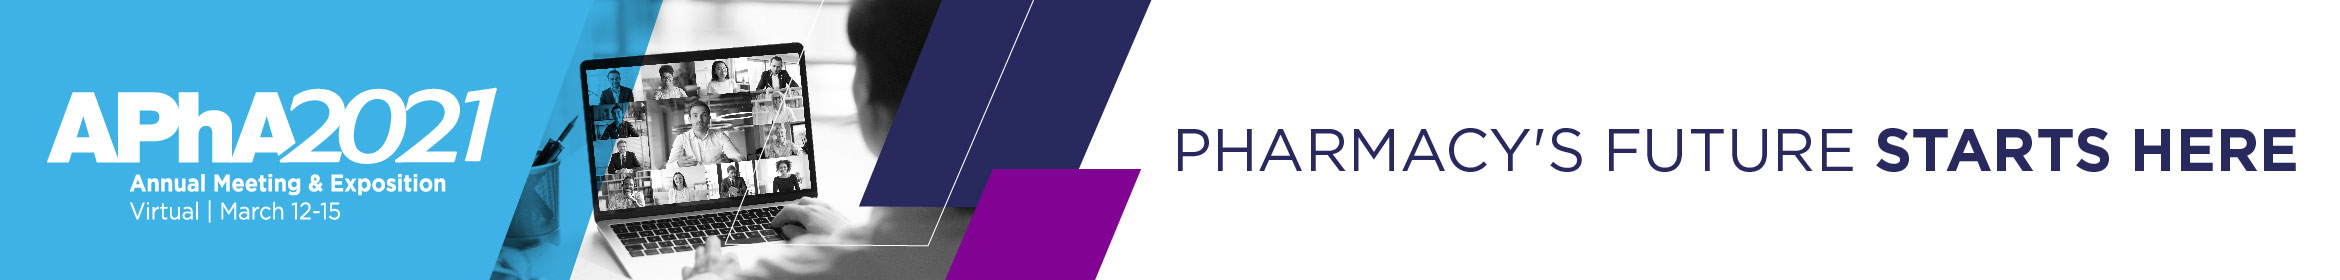 APhA Annual Meeting and Exposition Main banner